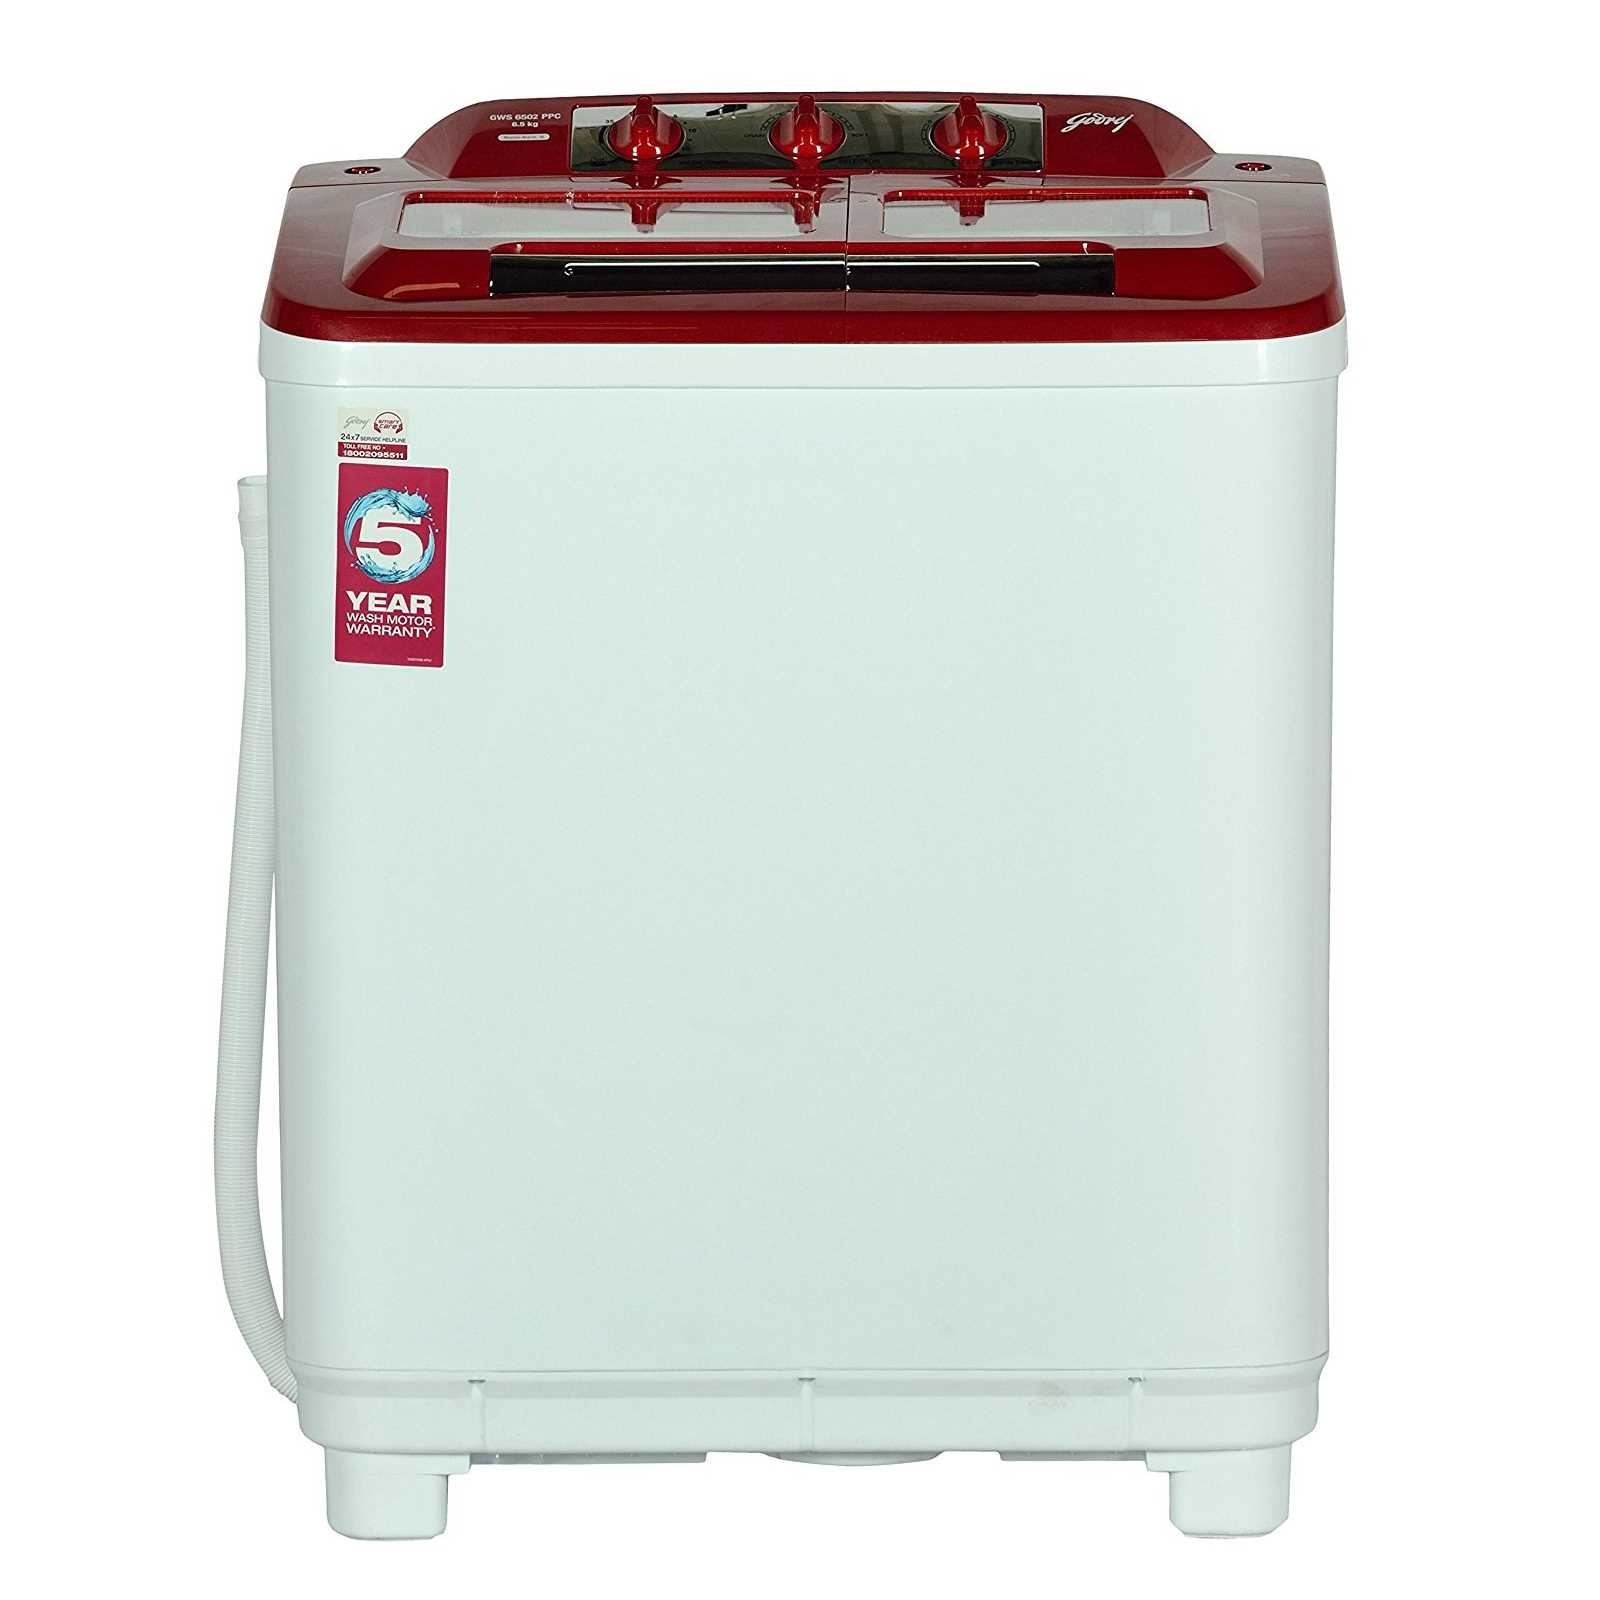 Godrej GWS 6502 PPC 6.5 Kg Semi Automatic Washing Machine